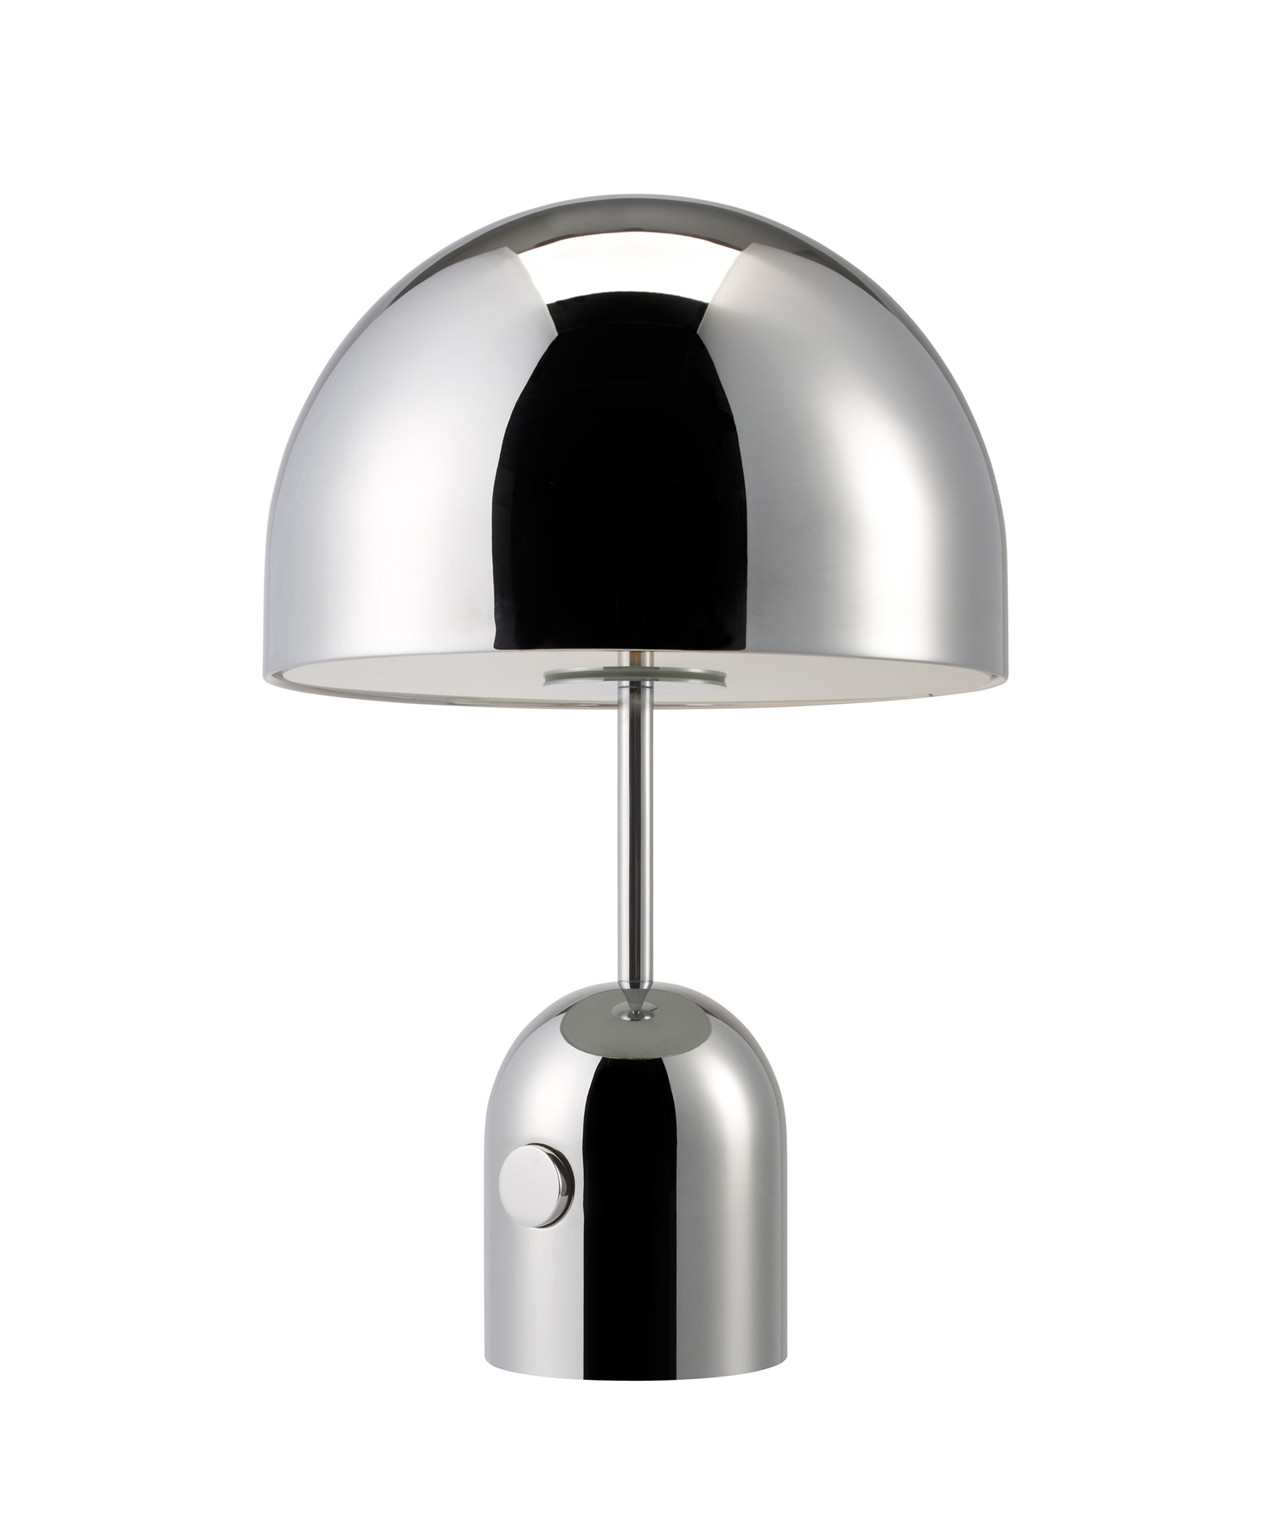 Image of   Bell Bordlampe Krom - Tom Dixon